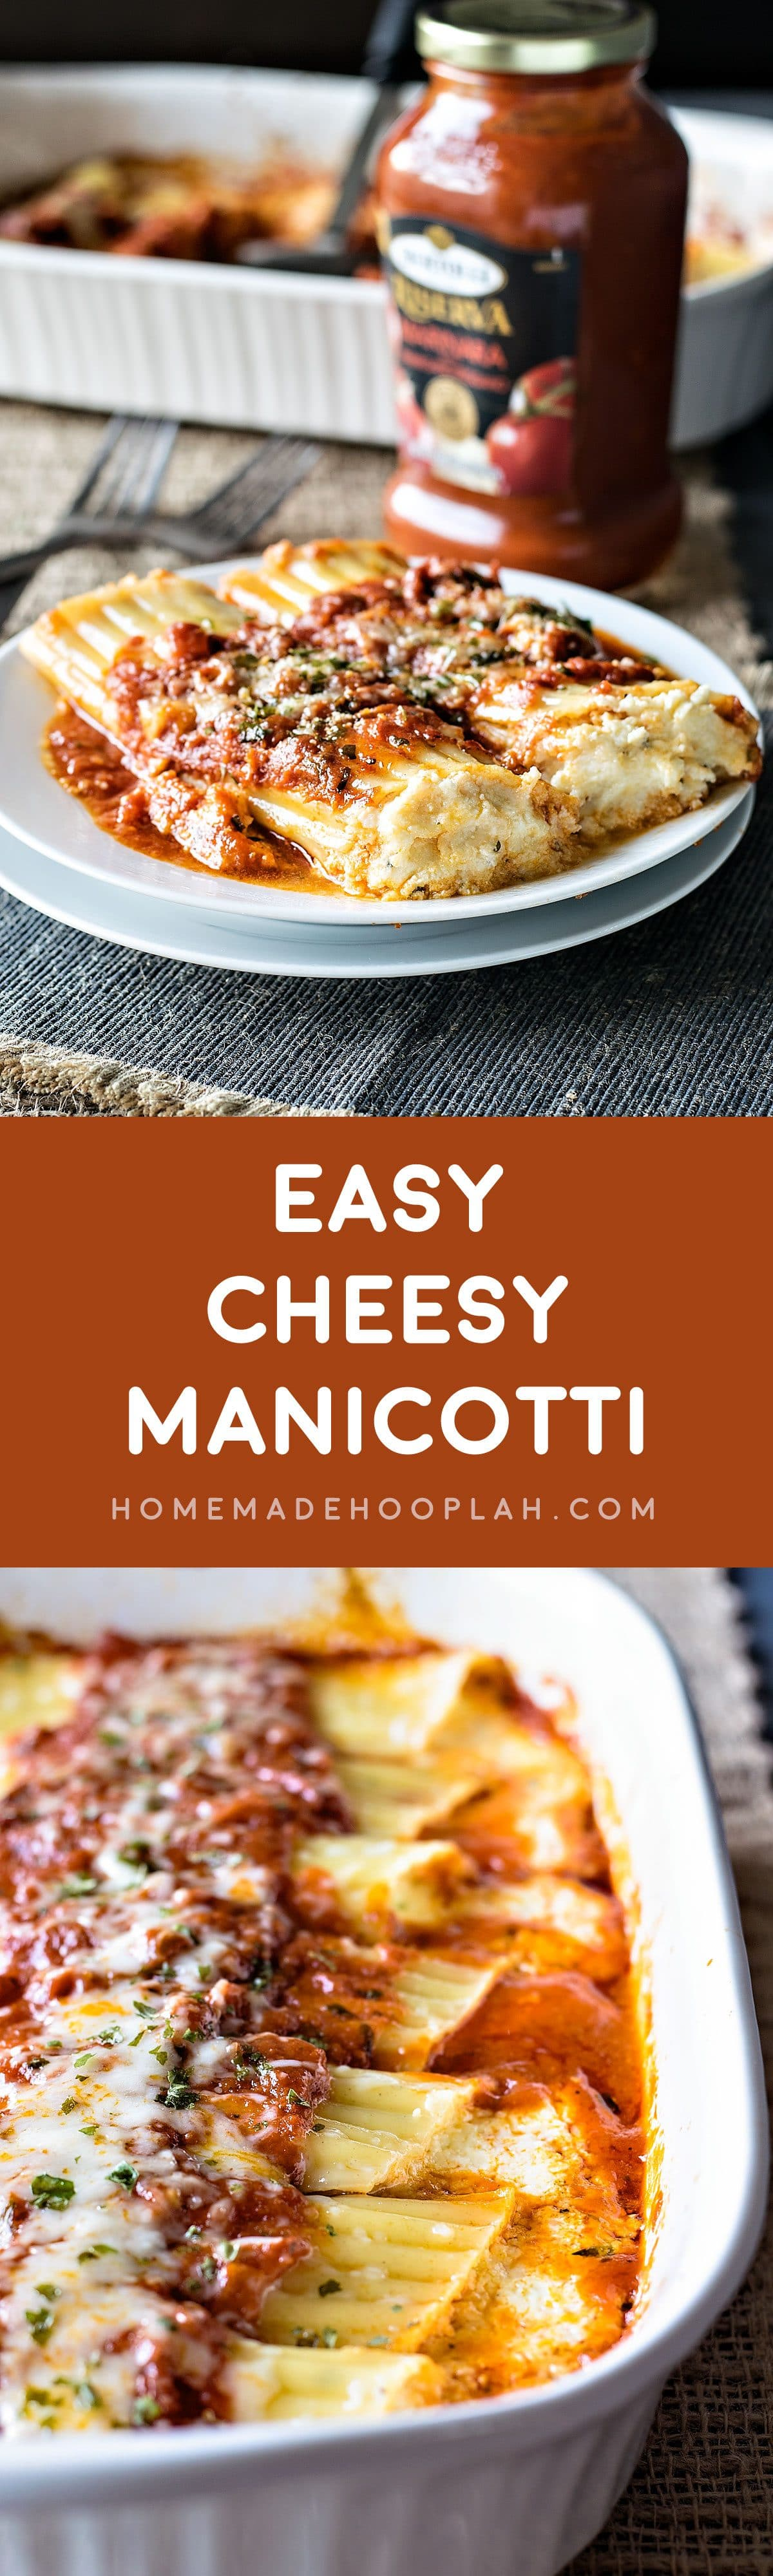 Easy Cheesy Manicotti! Bring a restaurant classic to your dinner table with this easy cheese manicotti recipe. Use Bertolli marinara sauce and cut your cook time in half! #sponsored| HomemadeHooplah.com